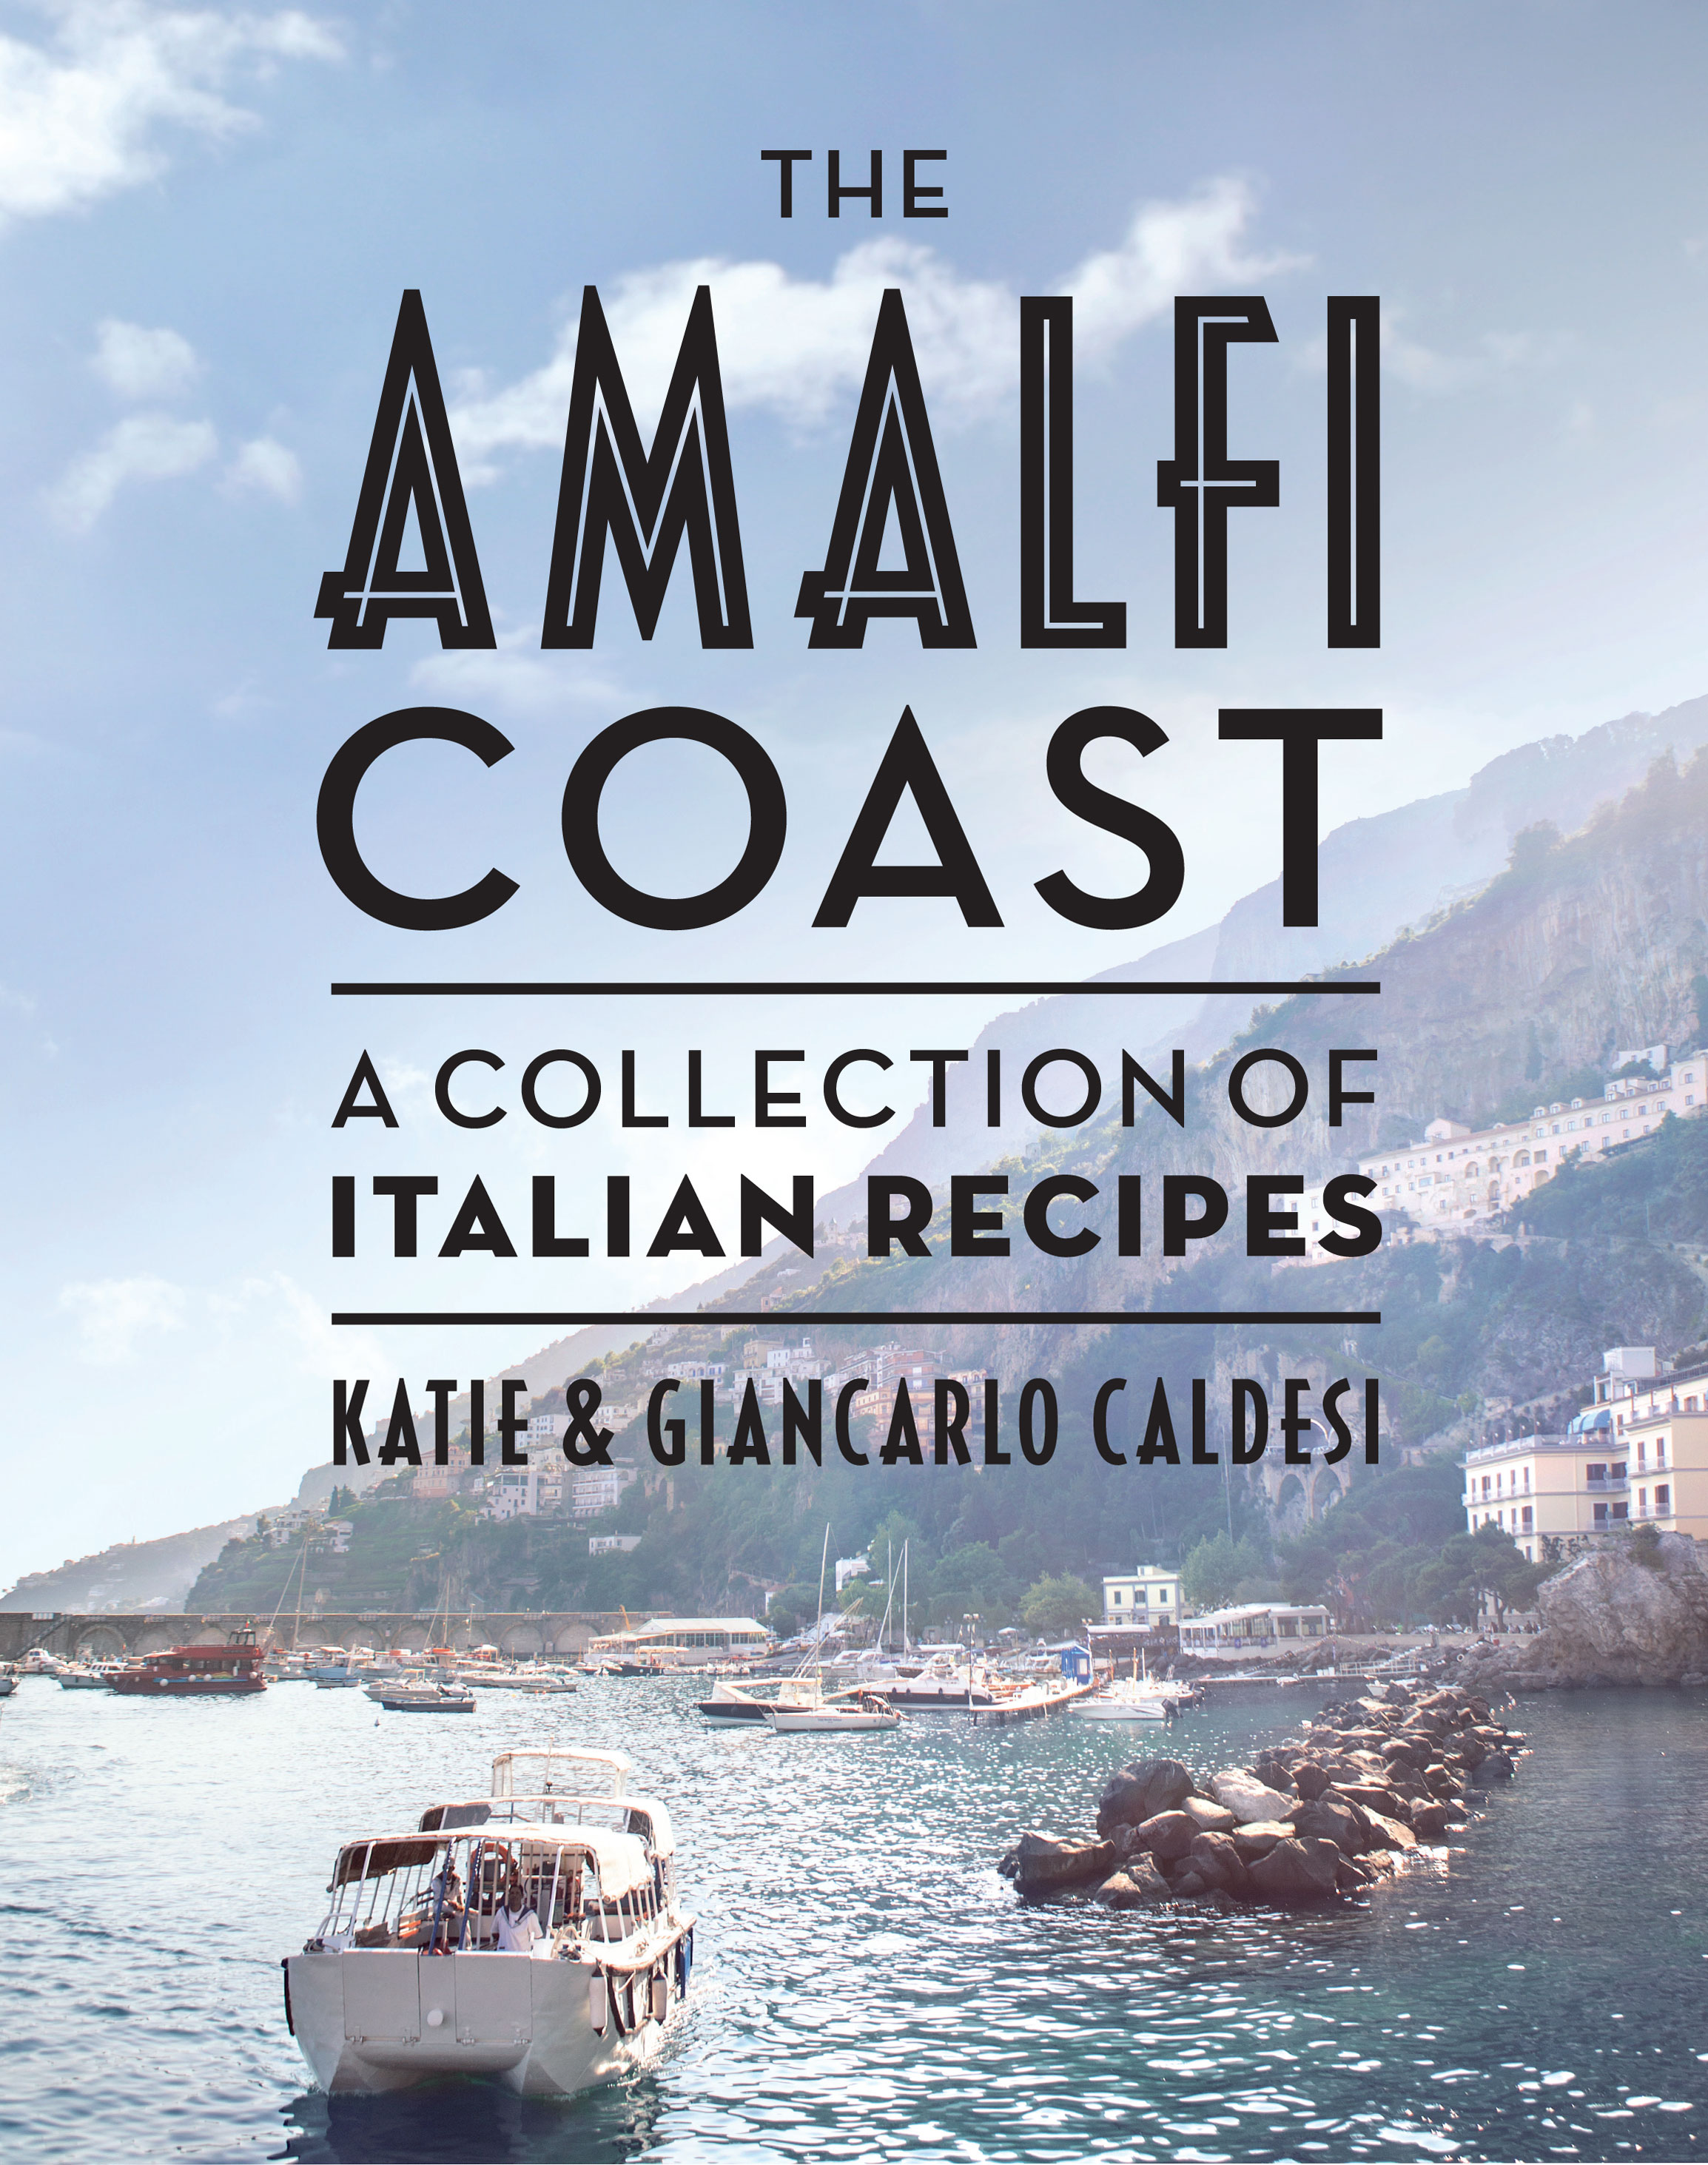 Amalfi Coast, The: A Collection of Italian Recipes